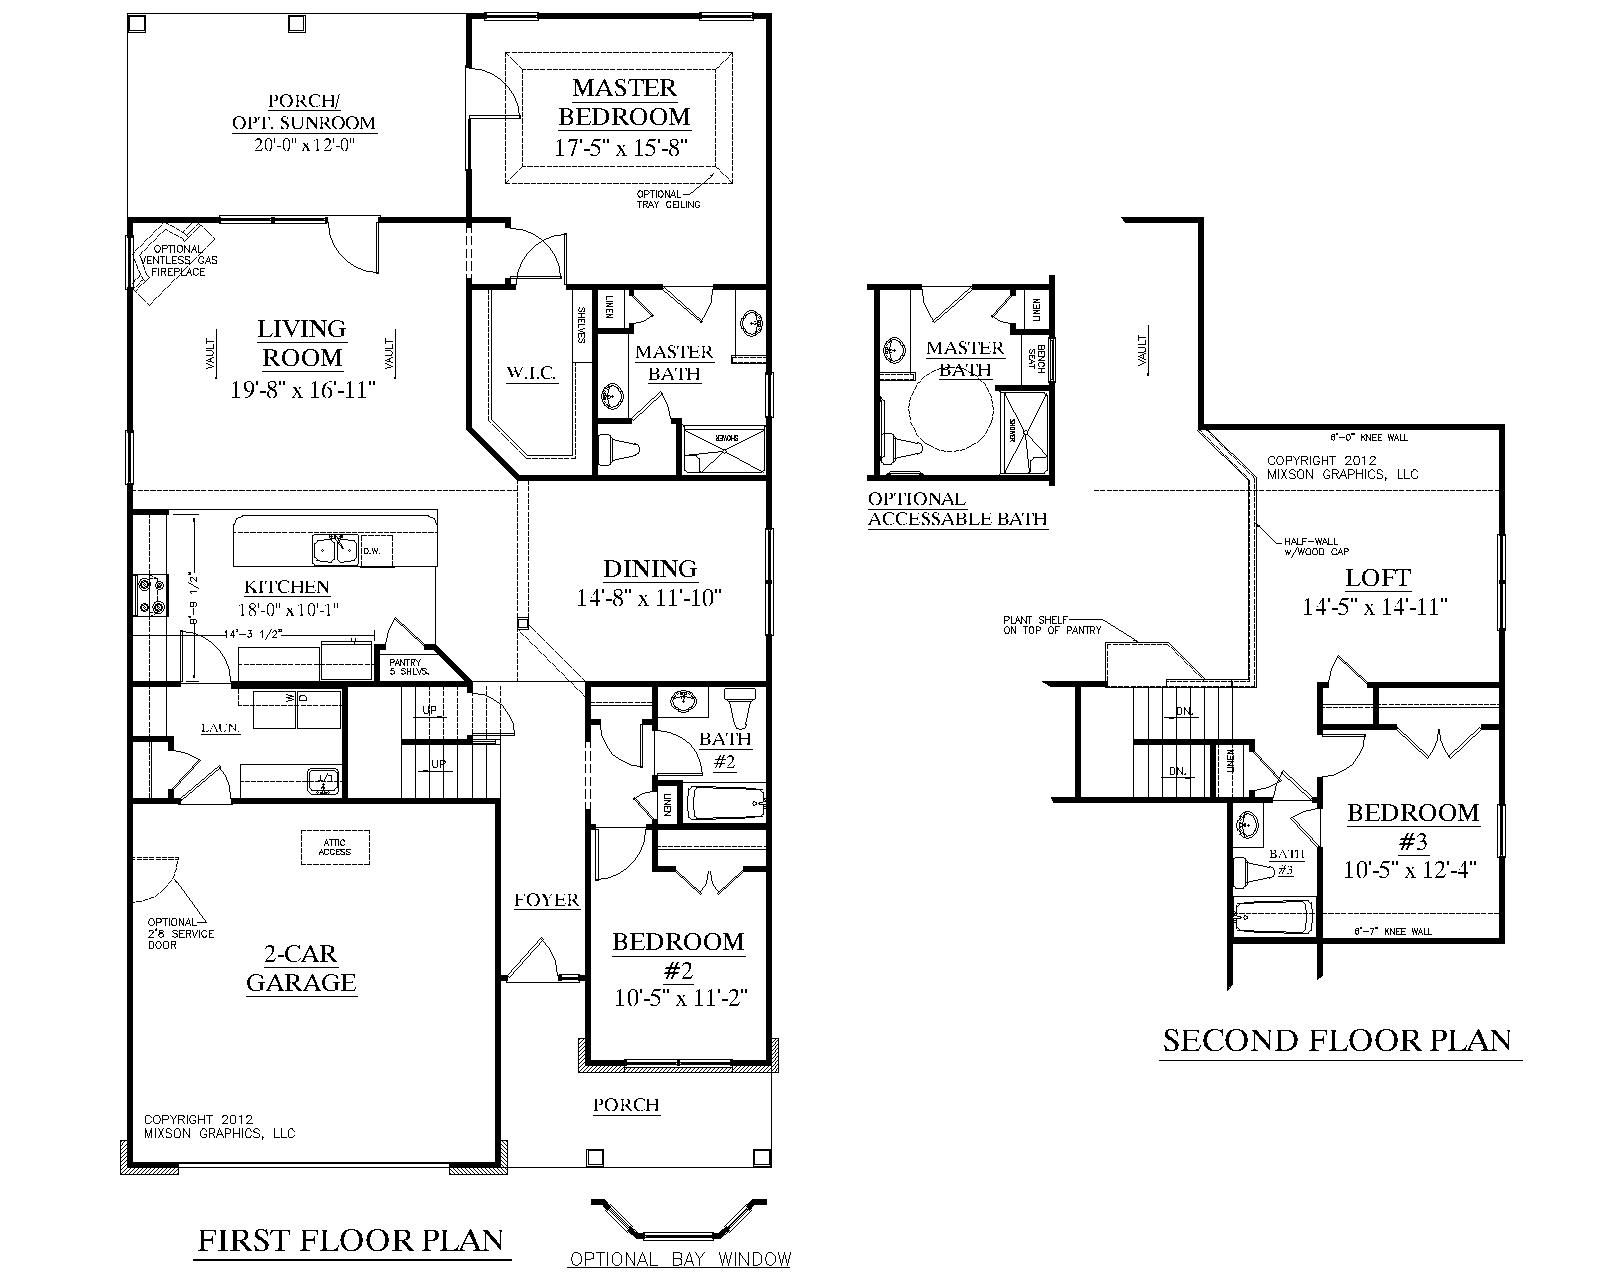 House plan 2224 kingstree floor plan traditional 1 1 2 for 2 story house plans 3 bedroom